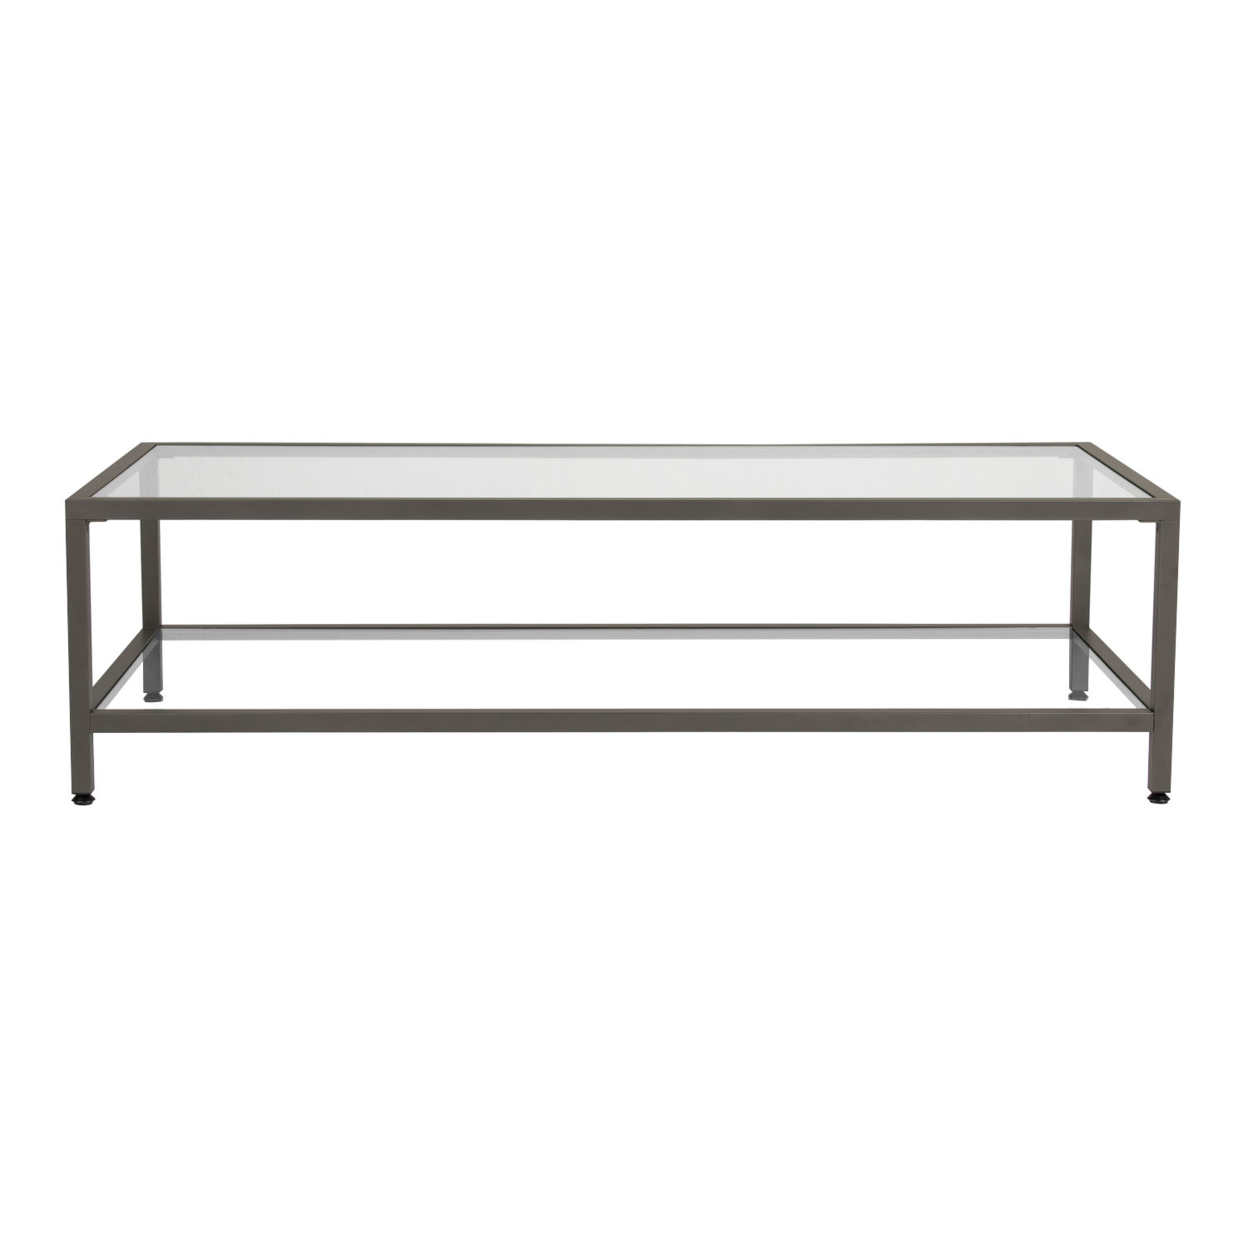 Studio Designs Camber Collection Rectangle Clear Glass Coffee Table - Pewter